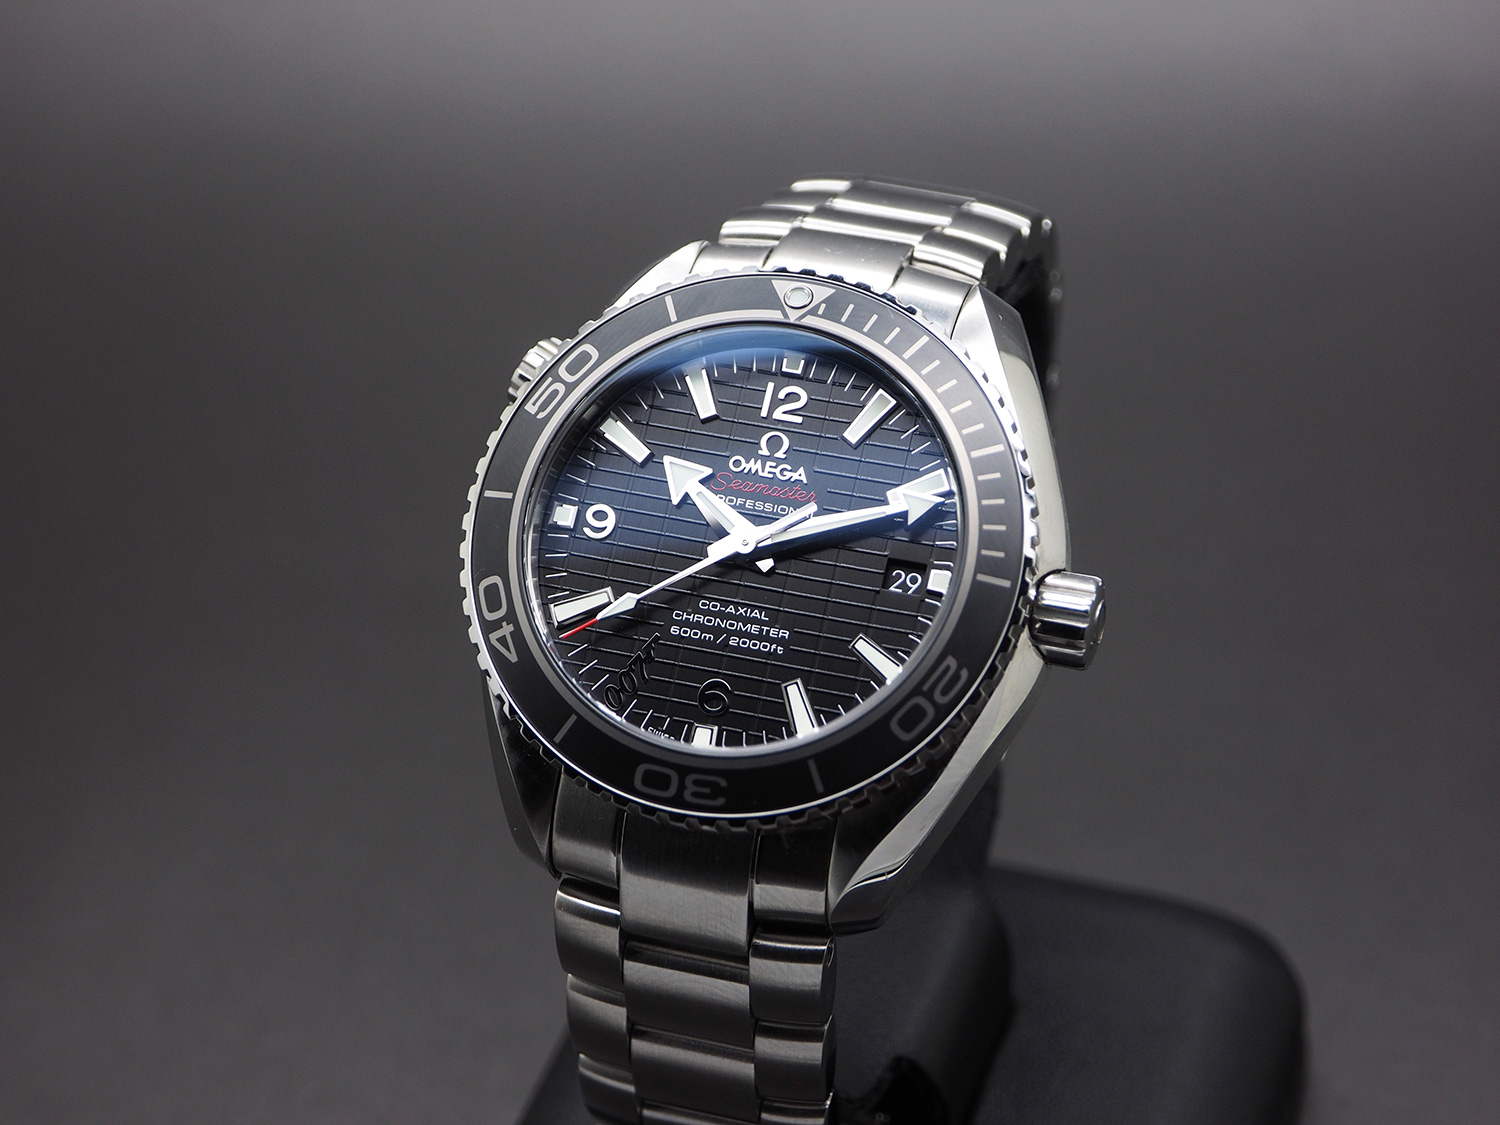 Omega Seamaster Planet Ocean Automatic Black Ceramic 42 mm 007 SKYFALL Limited Edition 9